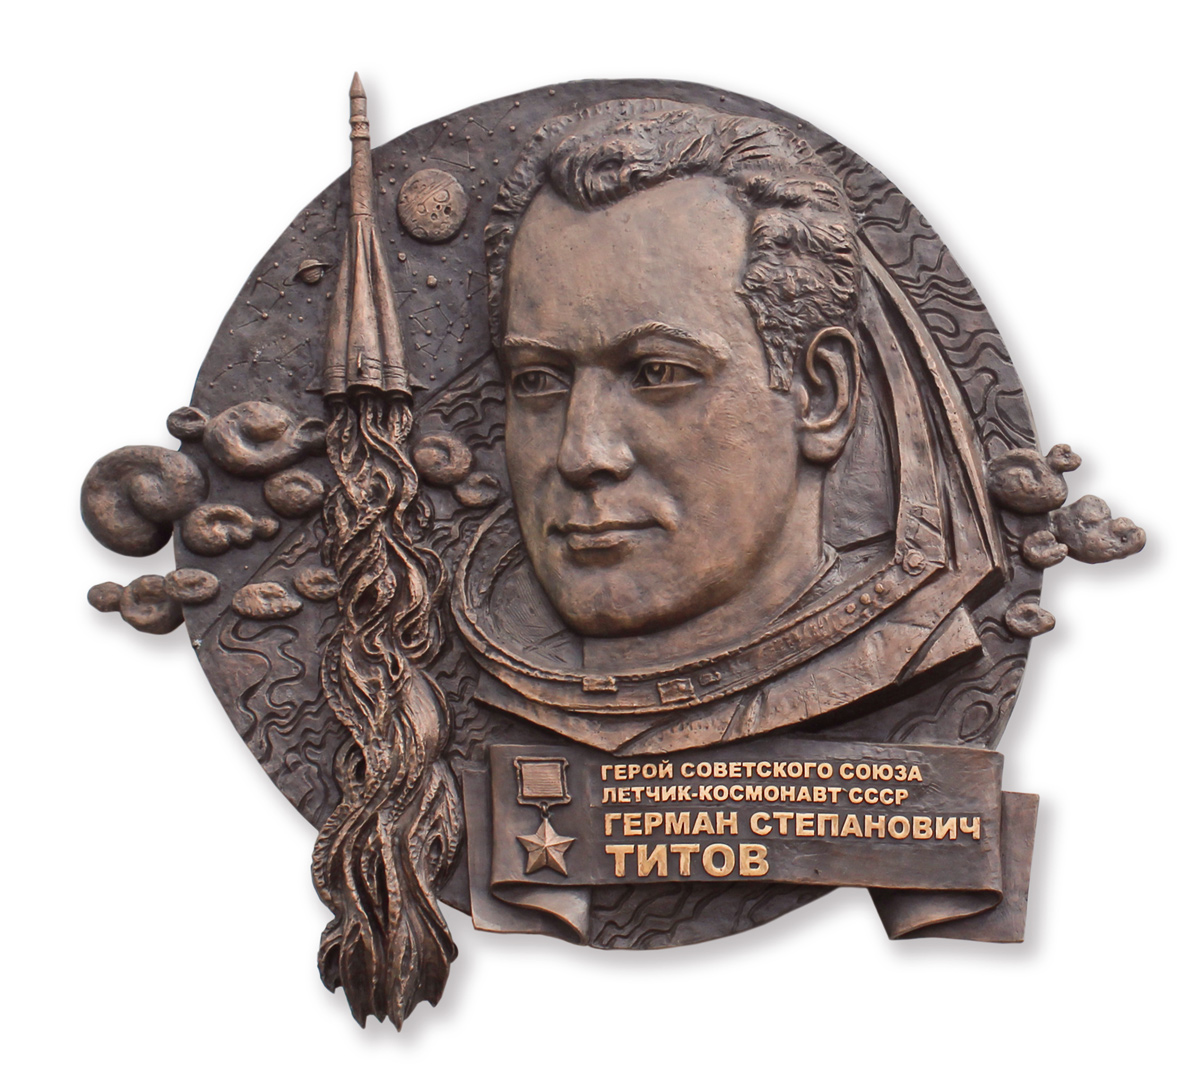 Oleg Zakomorny. Monumental relief of German Titov, Pilot Cosmonaut, hero of the Soviet Union